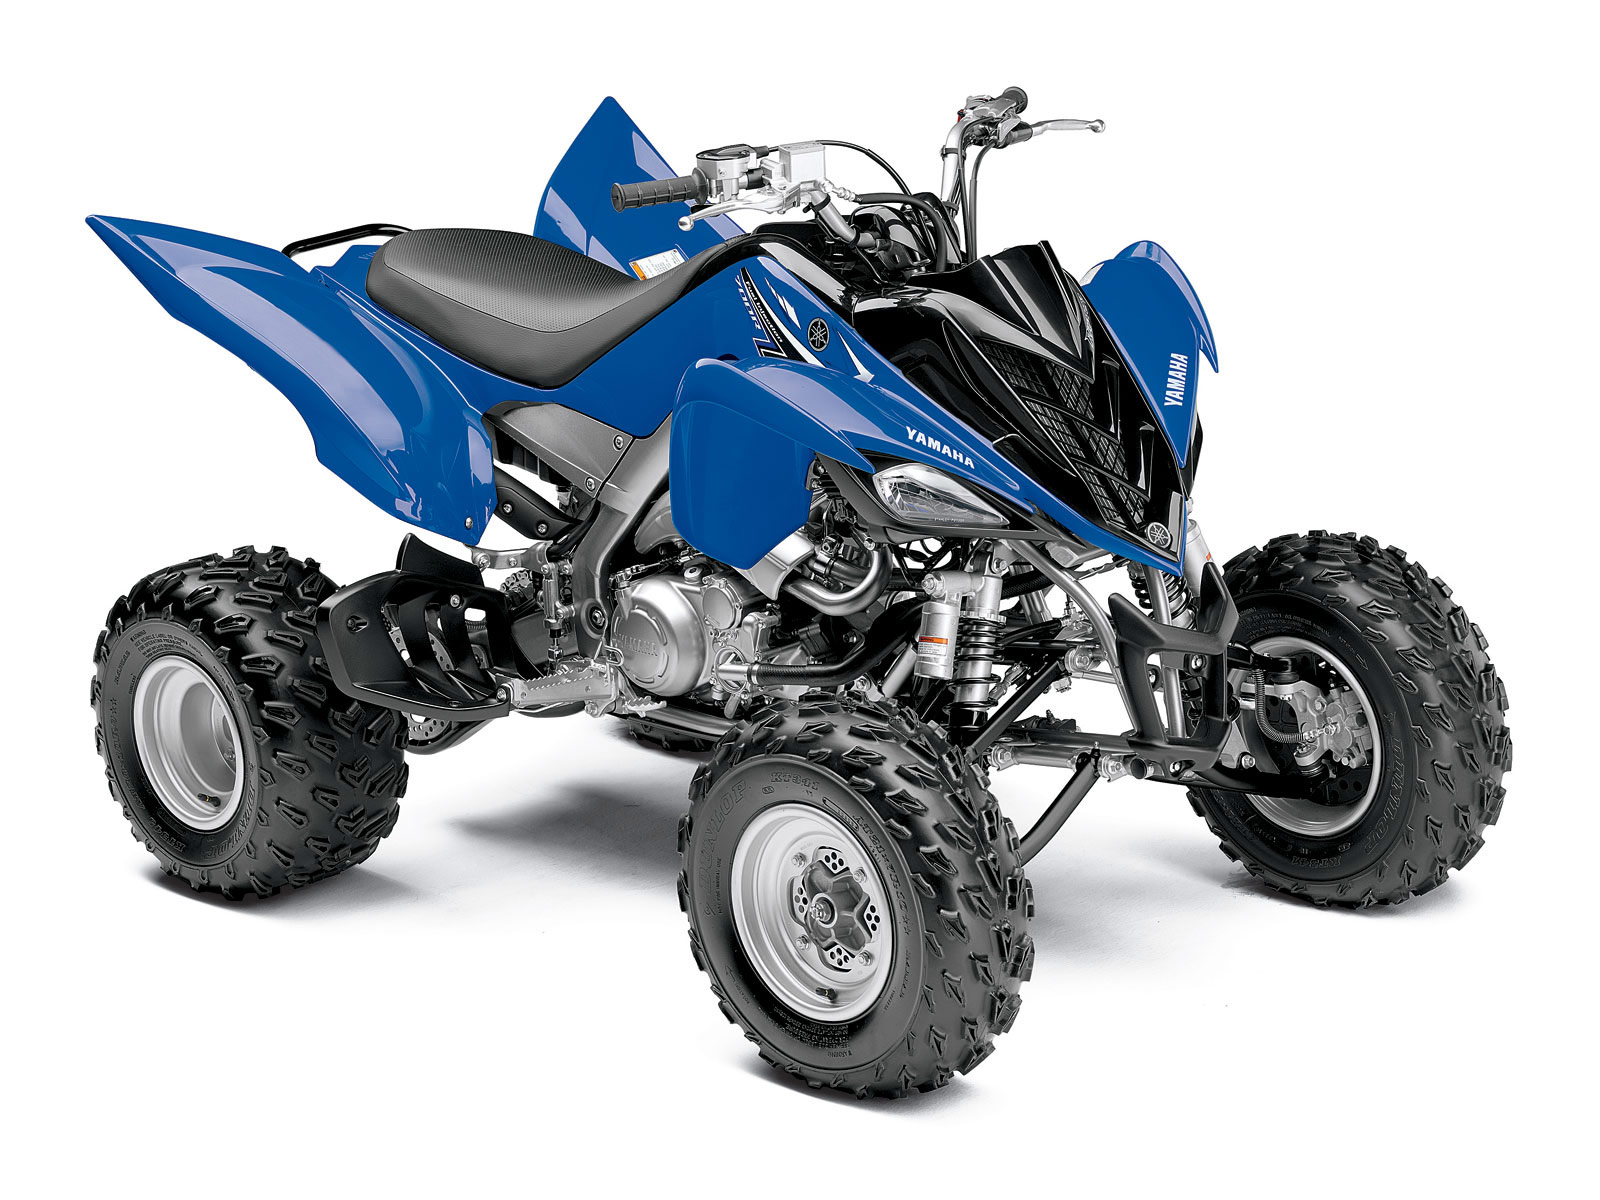 YAMAHA pictures   2011 Raptor 700R specifications